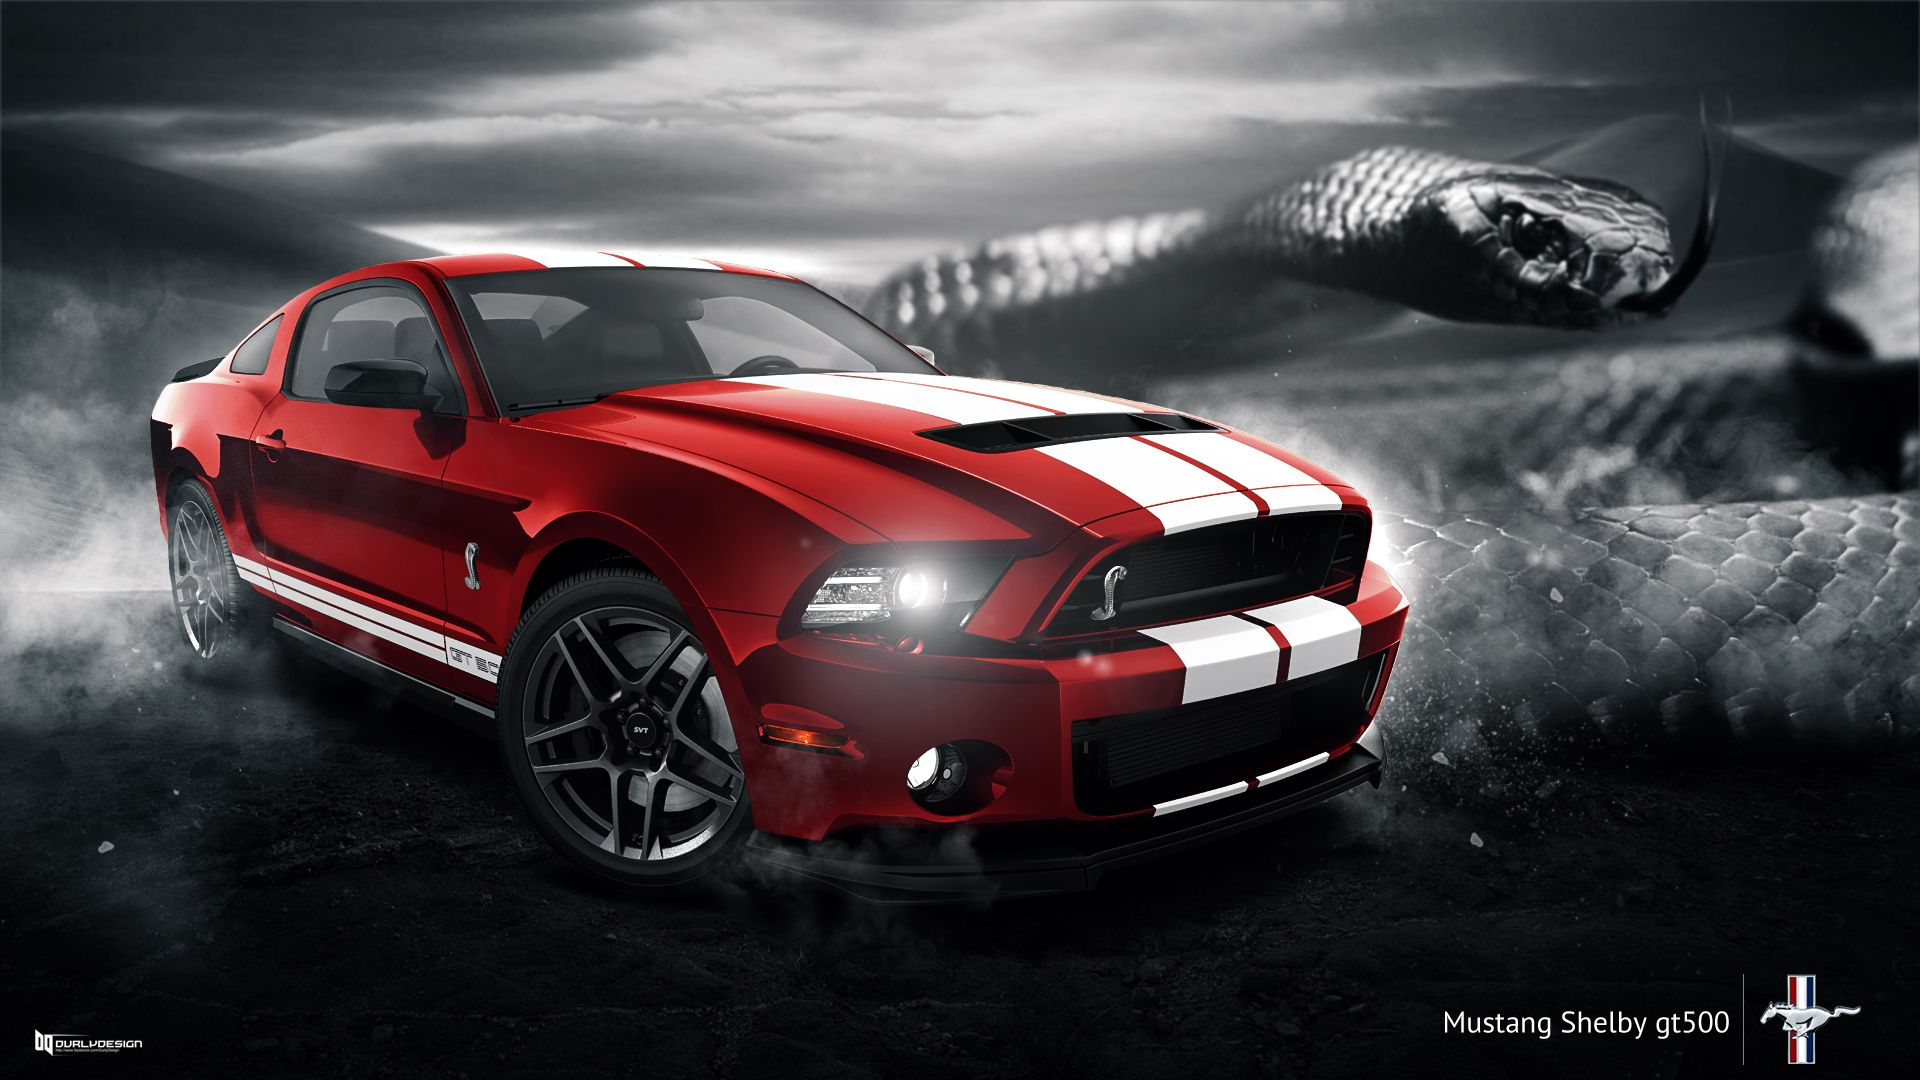 Shelby Mustang Wallpaper Widescreen Hvm Ford Mustang Shelby